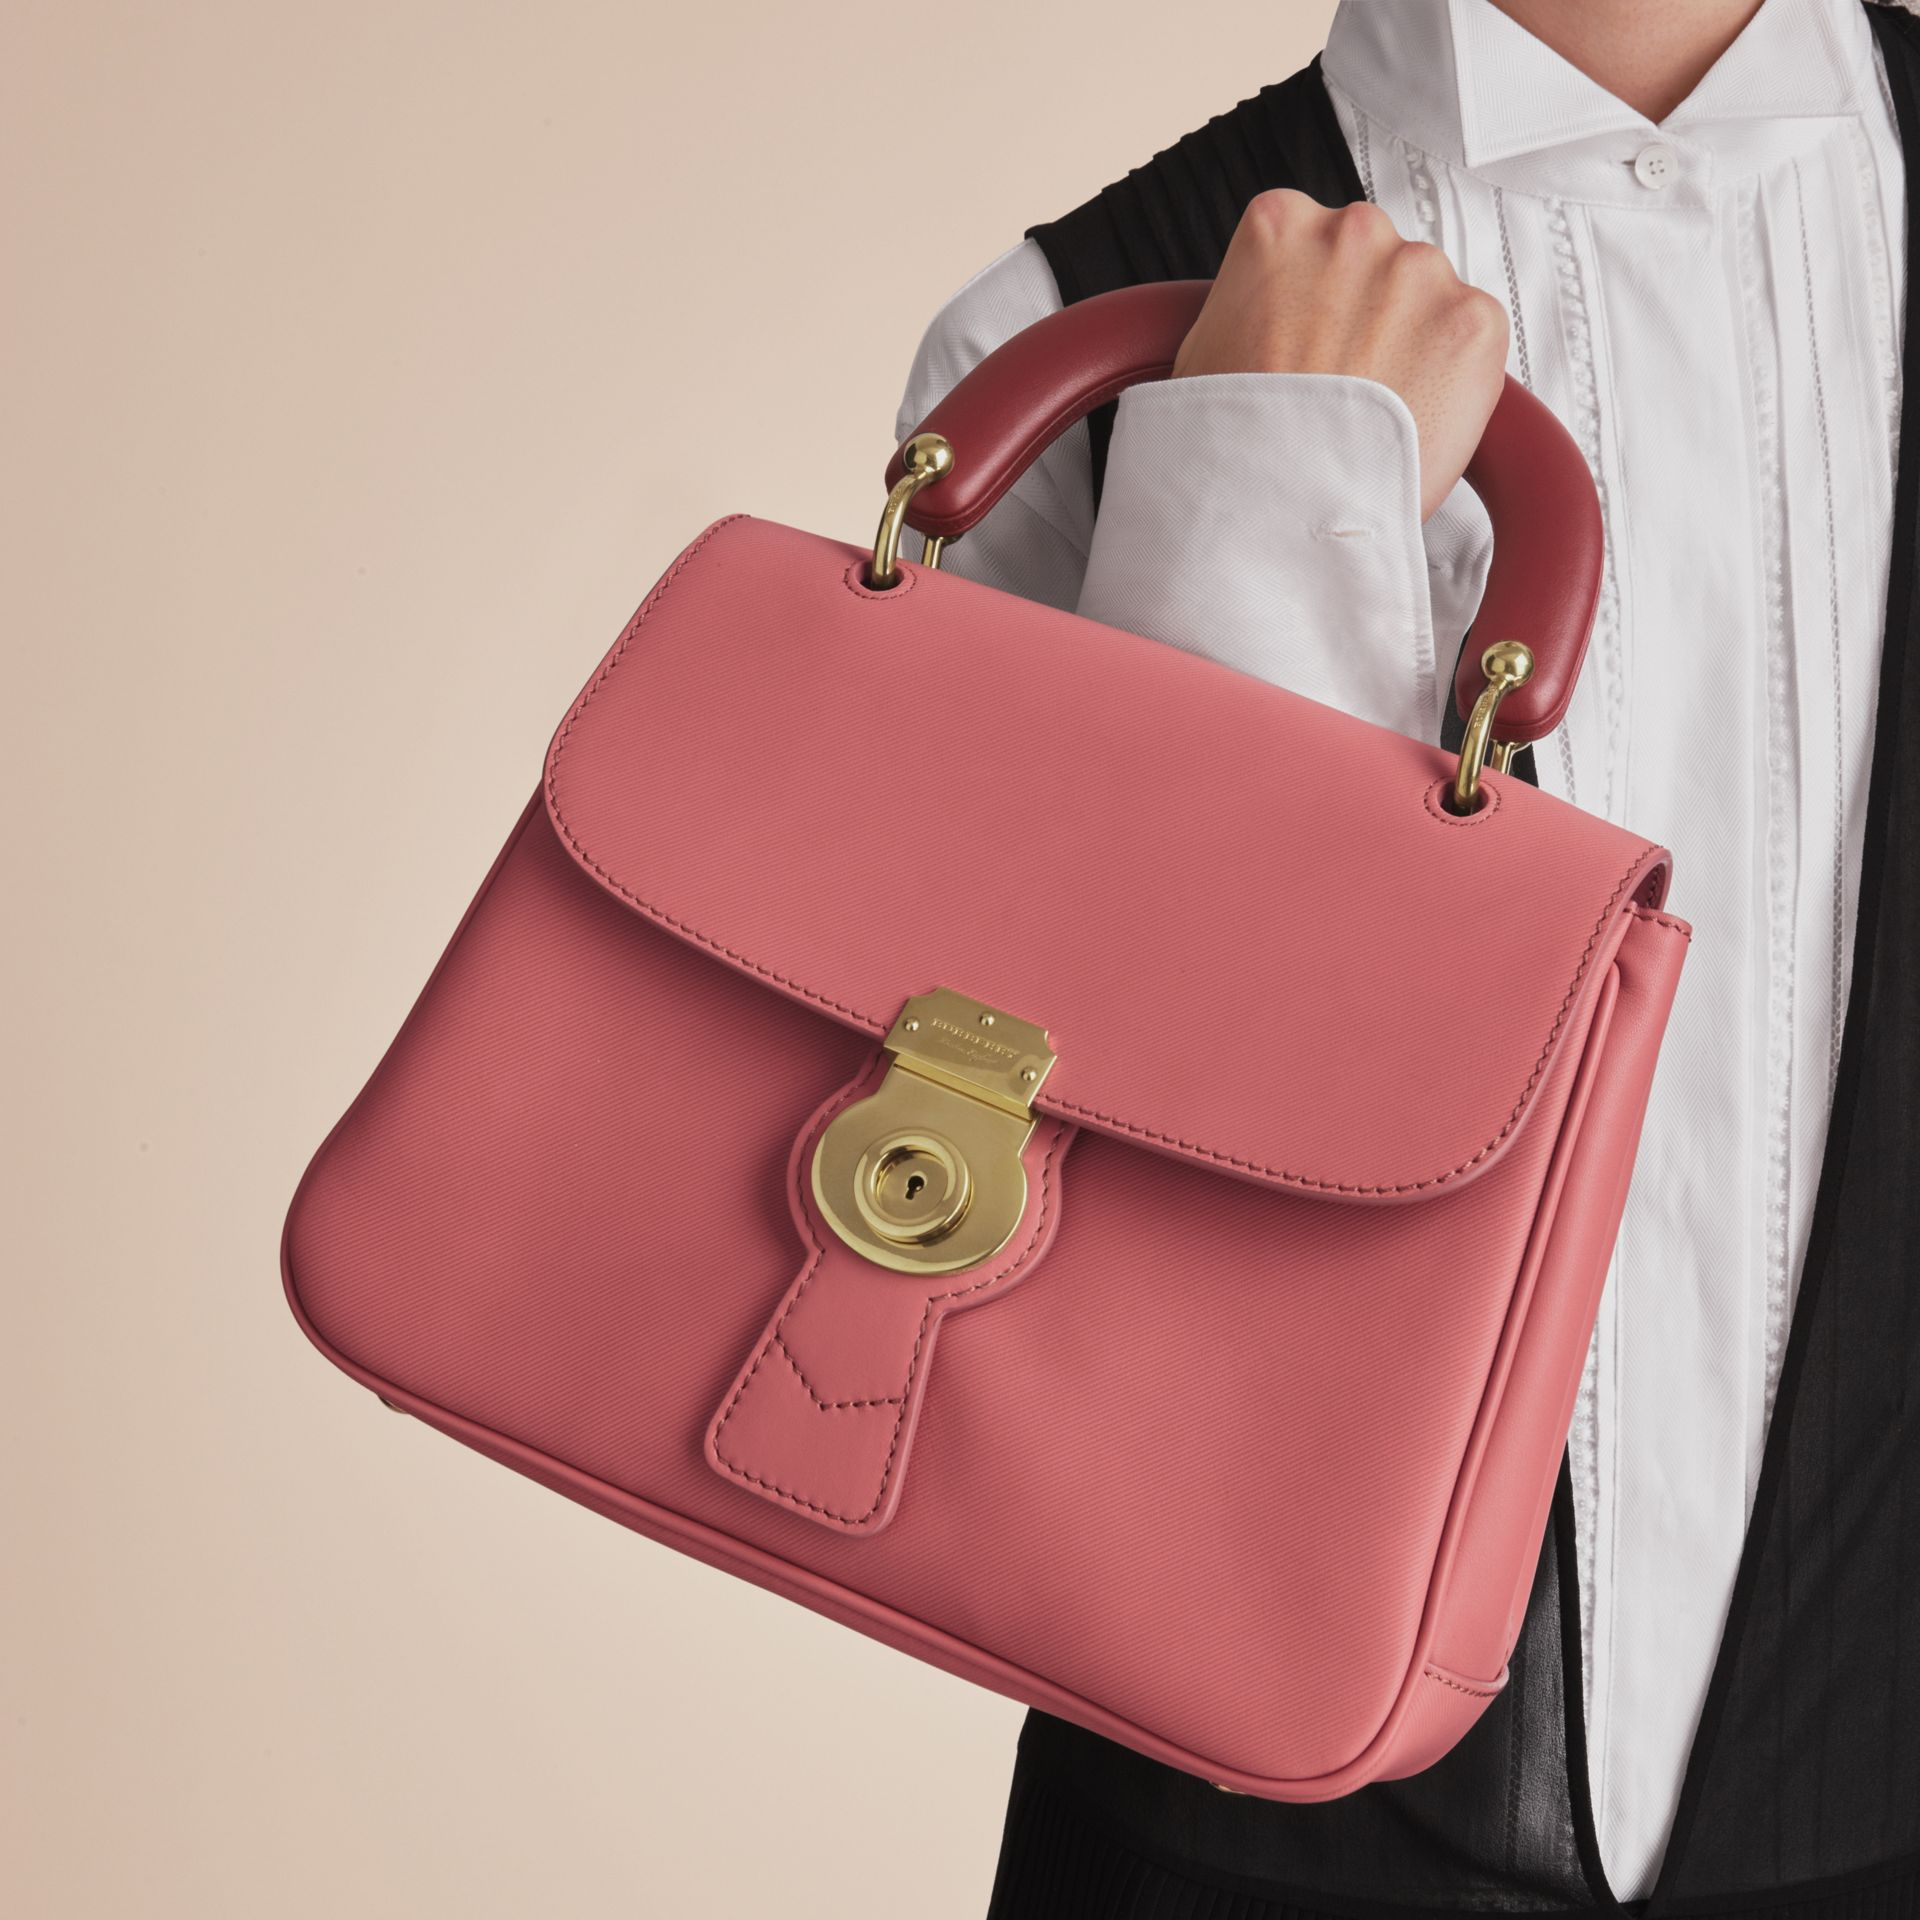 The Medium DK88 Top Handle Bag in Blossom Pink - Women | Burberry Singapore - gallery image 5